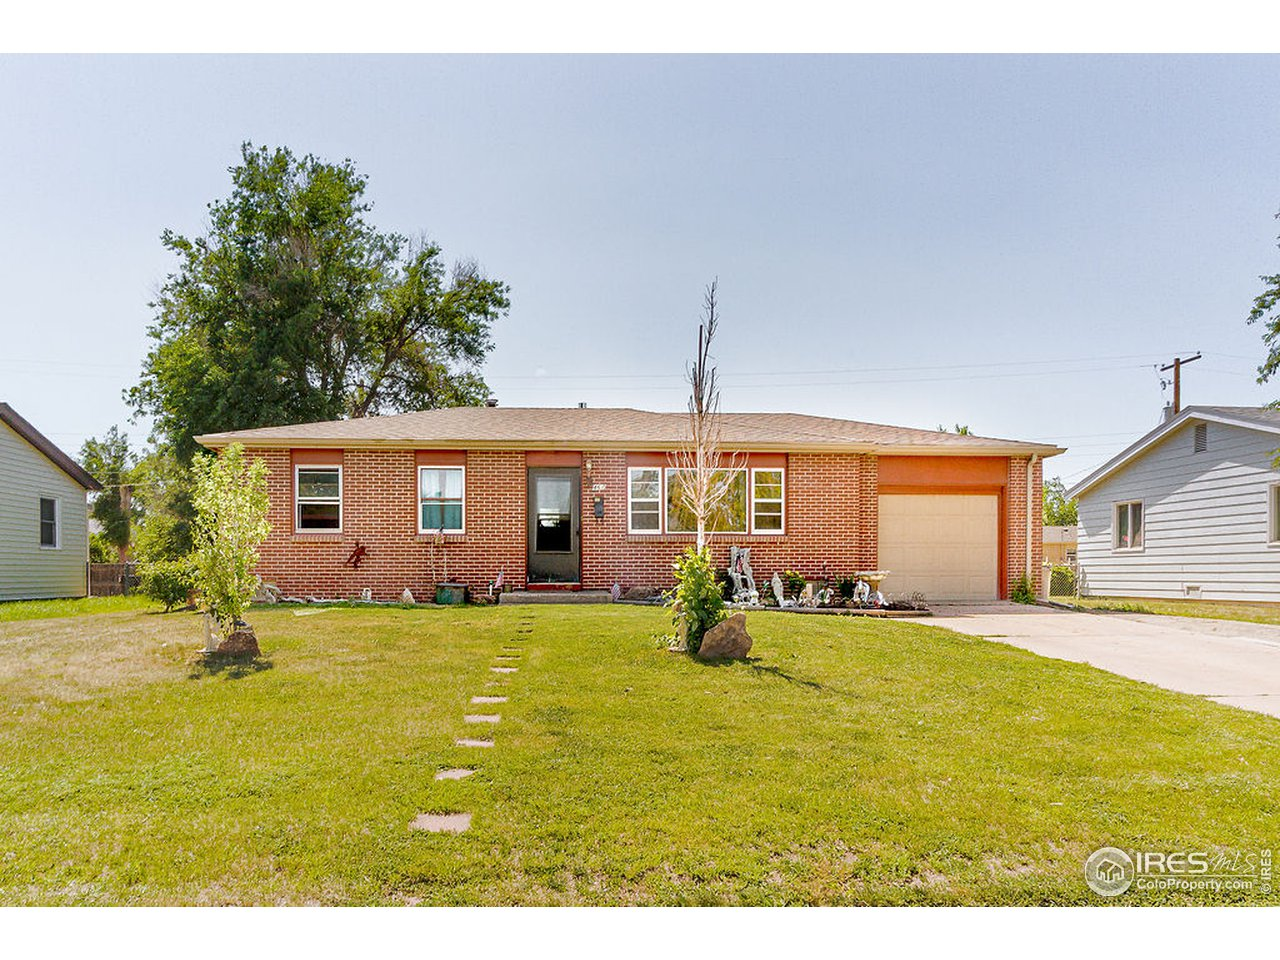 467 26th Ave, Greeley CO 80634